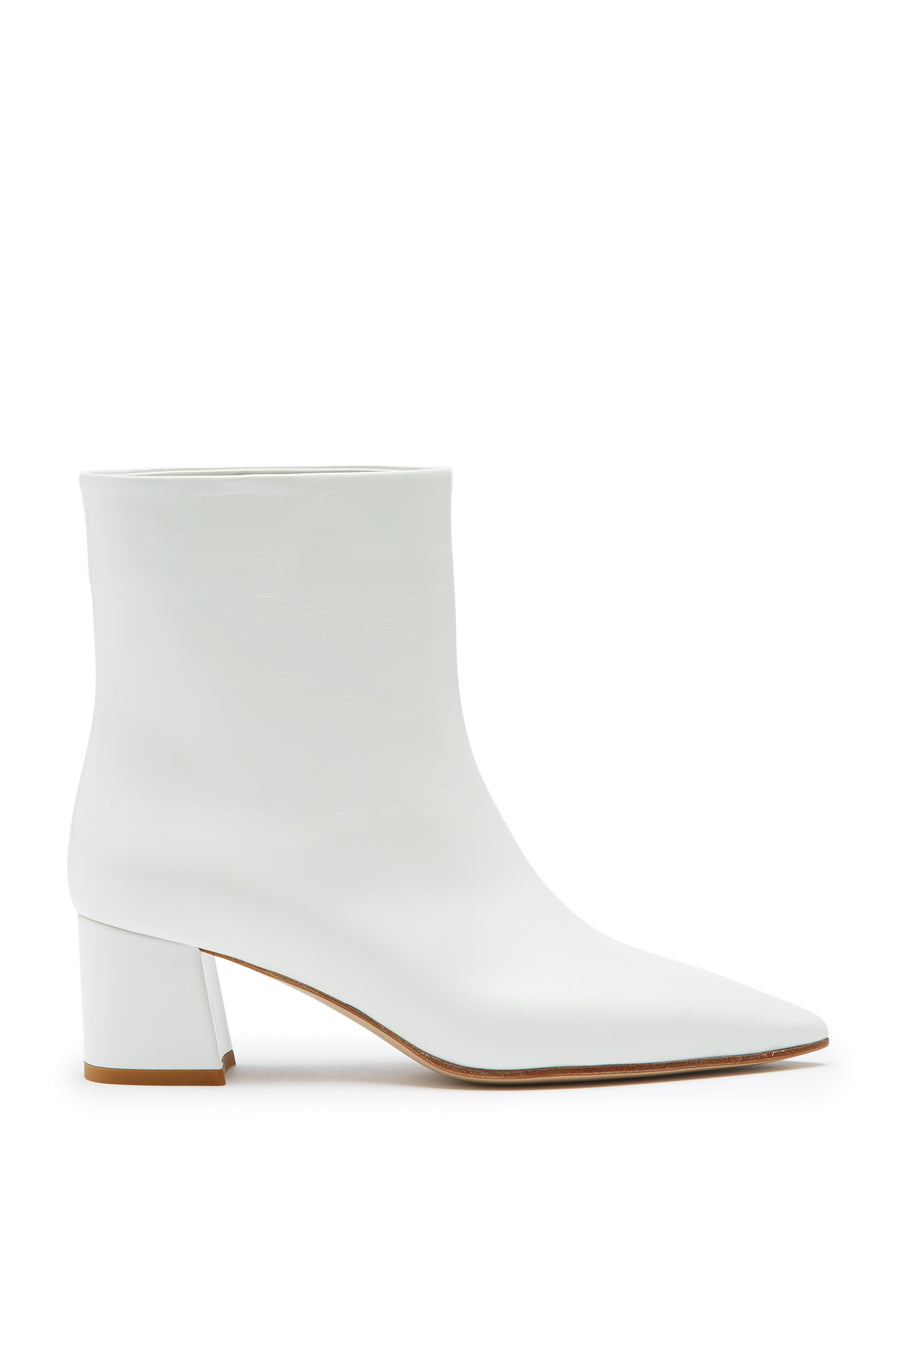 Block Heel Boot, pull on ankle boot, Italian calf leather, loose fit around ankle, block heel, cone toe, Color Bianco